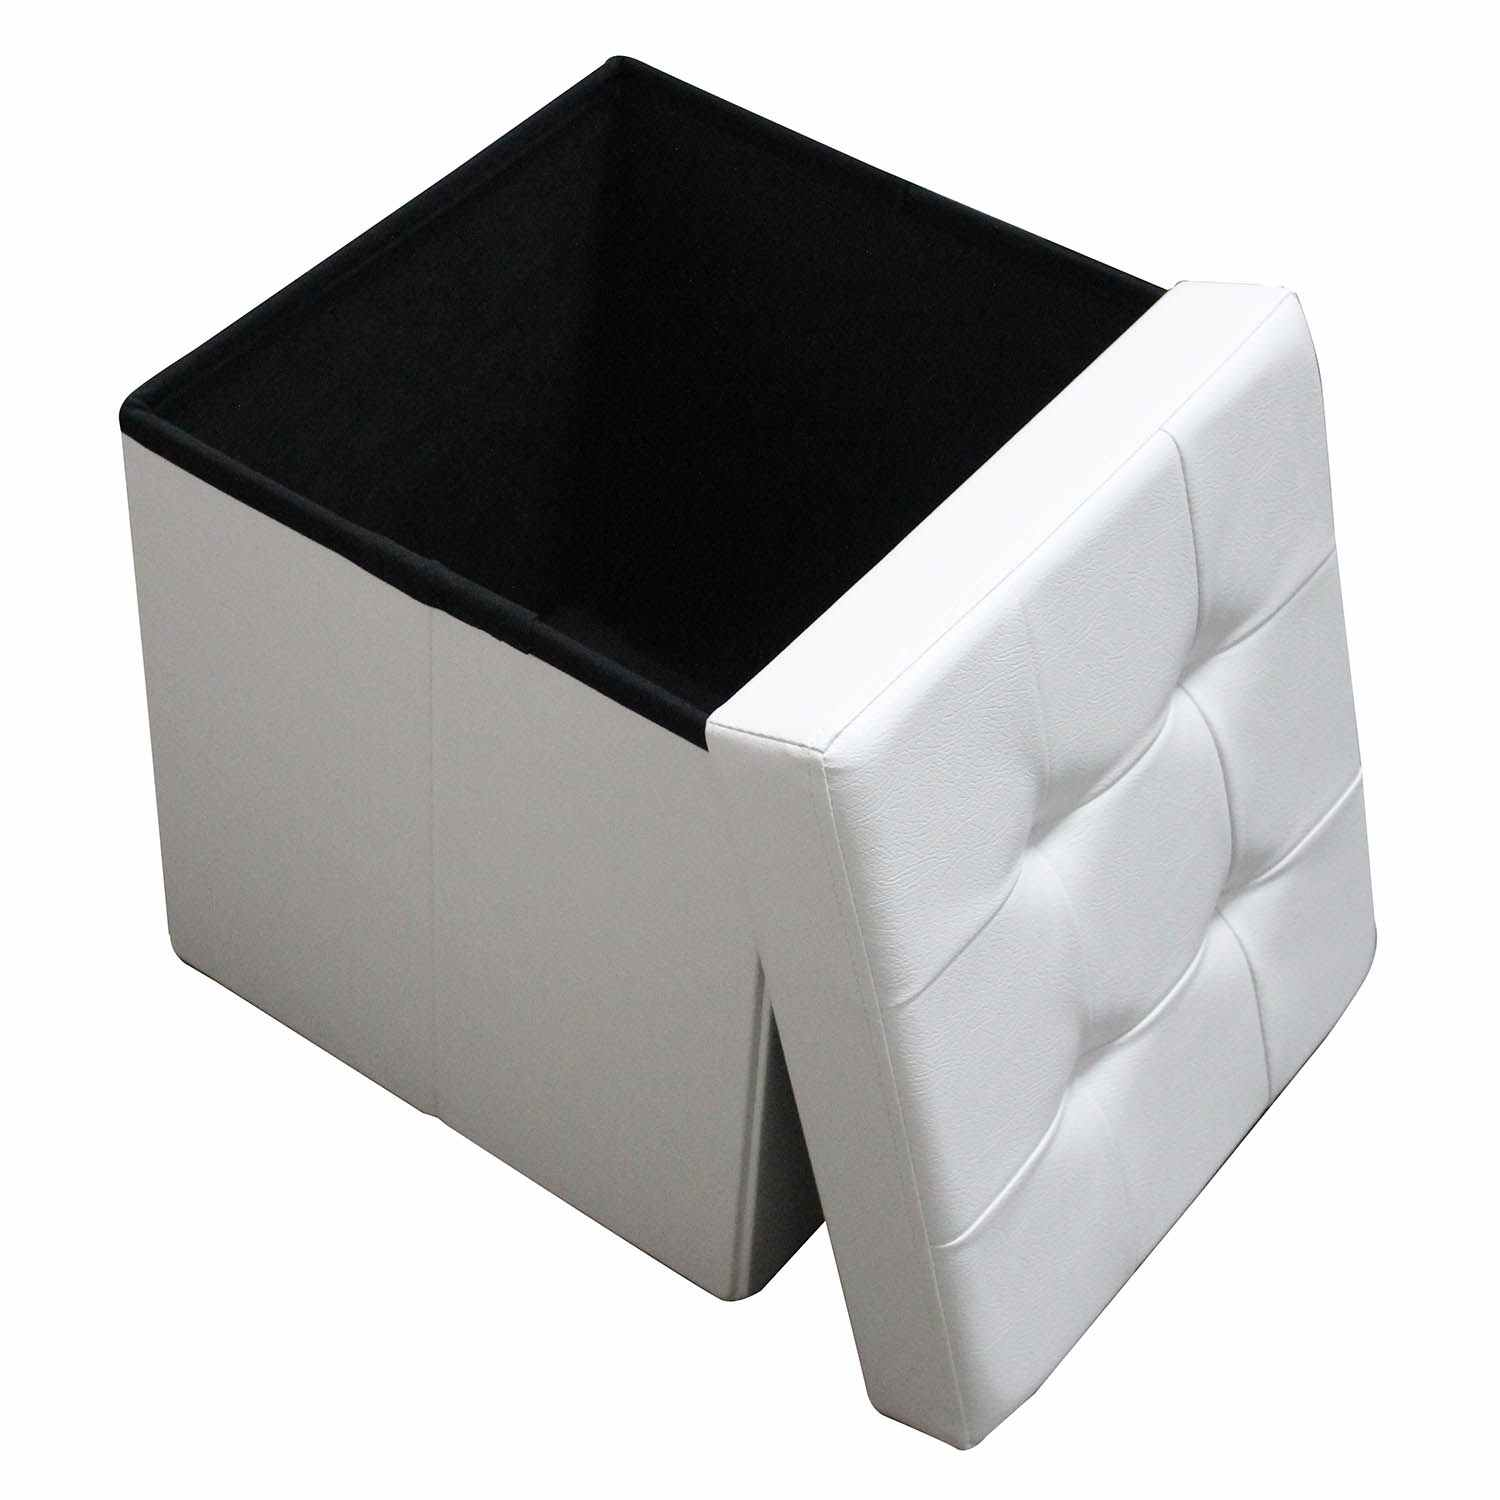 deco in paris 8 pouf coffre carre pliable blanc pouf. Black Bedroom Furniture Sets. Home Design Ideas